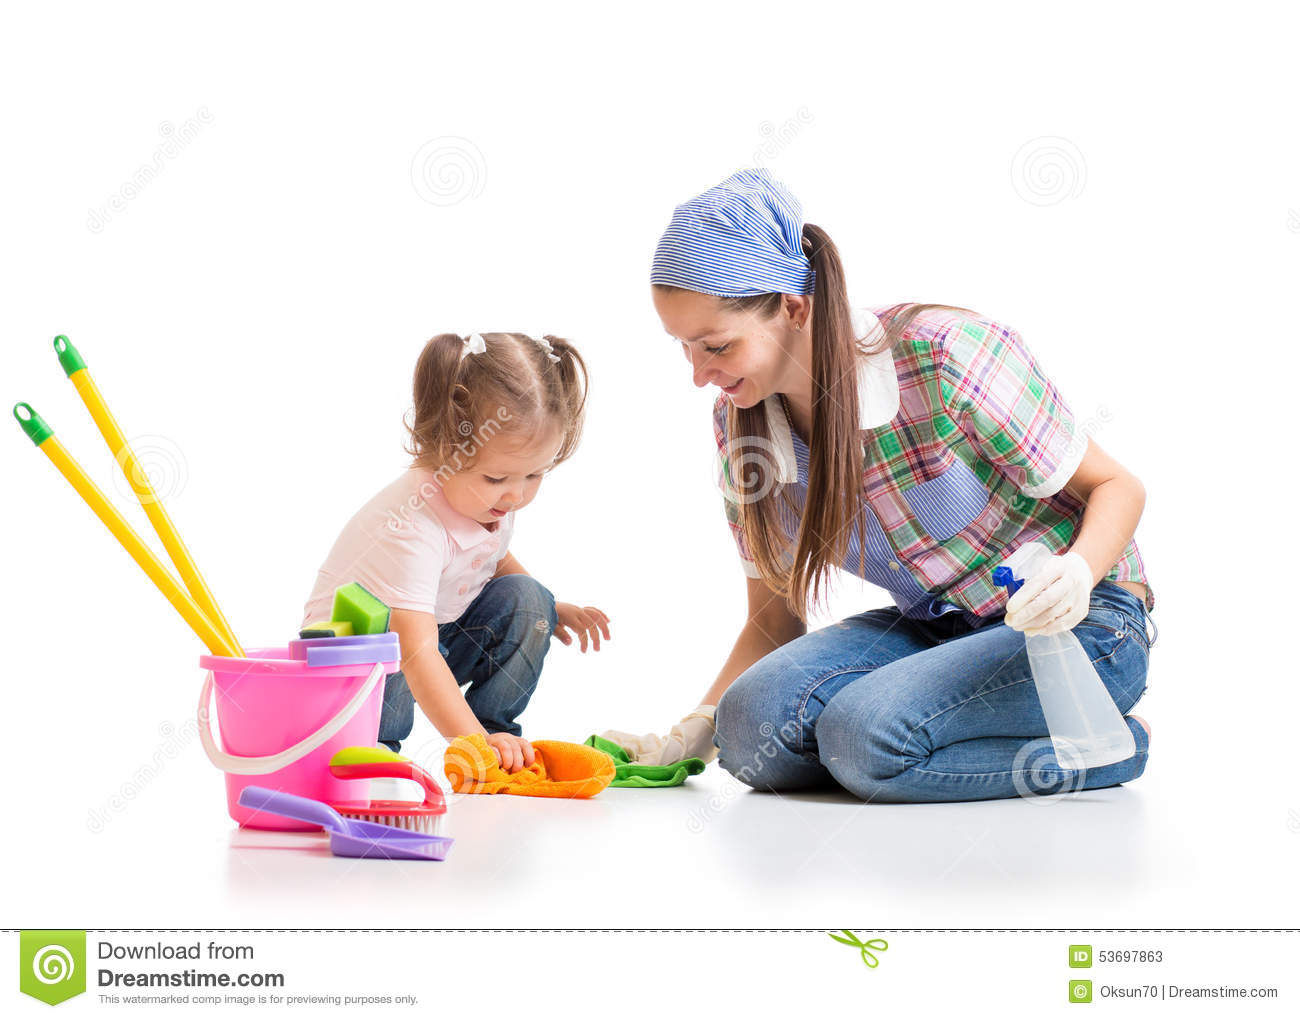 Labores Manuales Para El Hogar Mom And Daughter Cleaning House Royalty Free Stock Photo